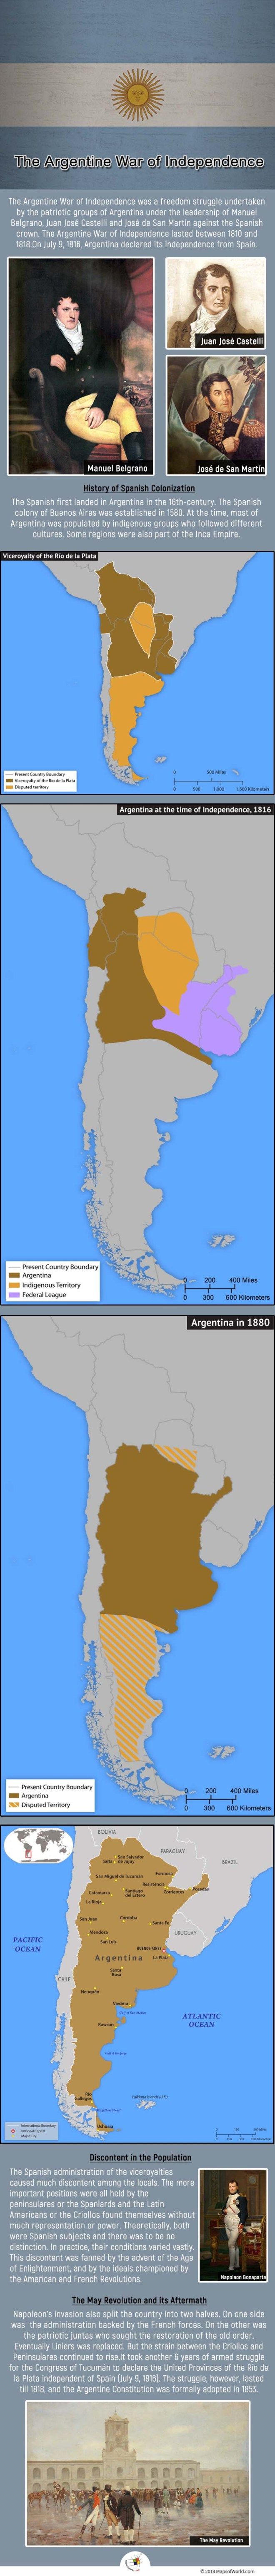 he Argentine War of Independence lasted between 1810 and 1818